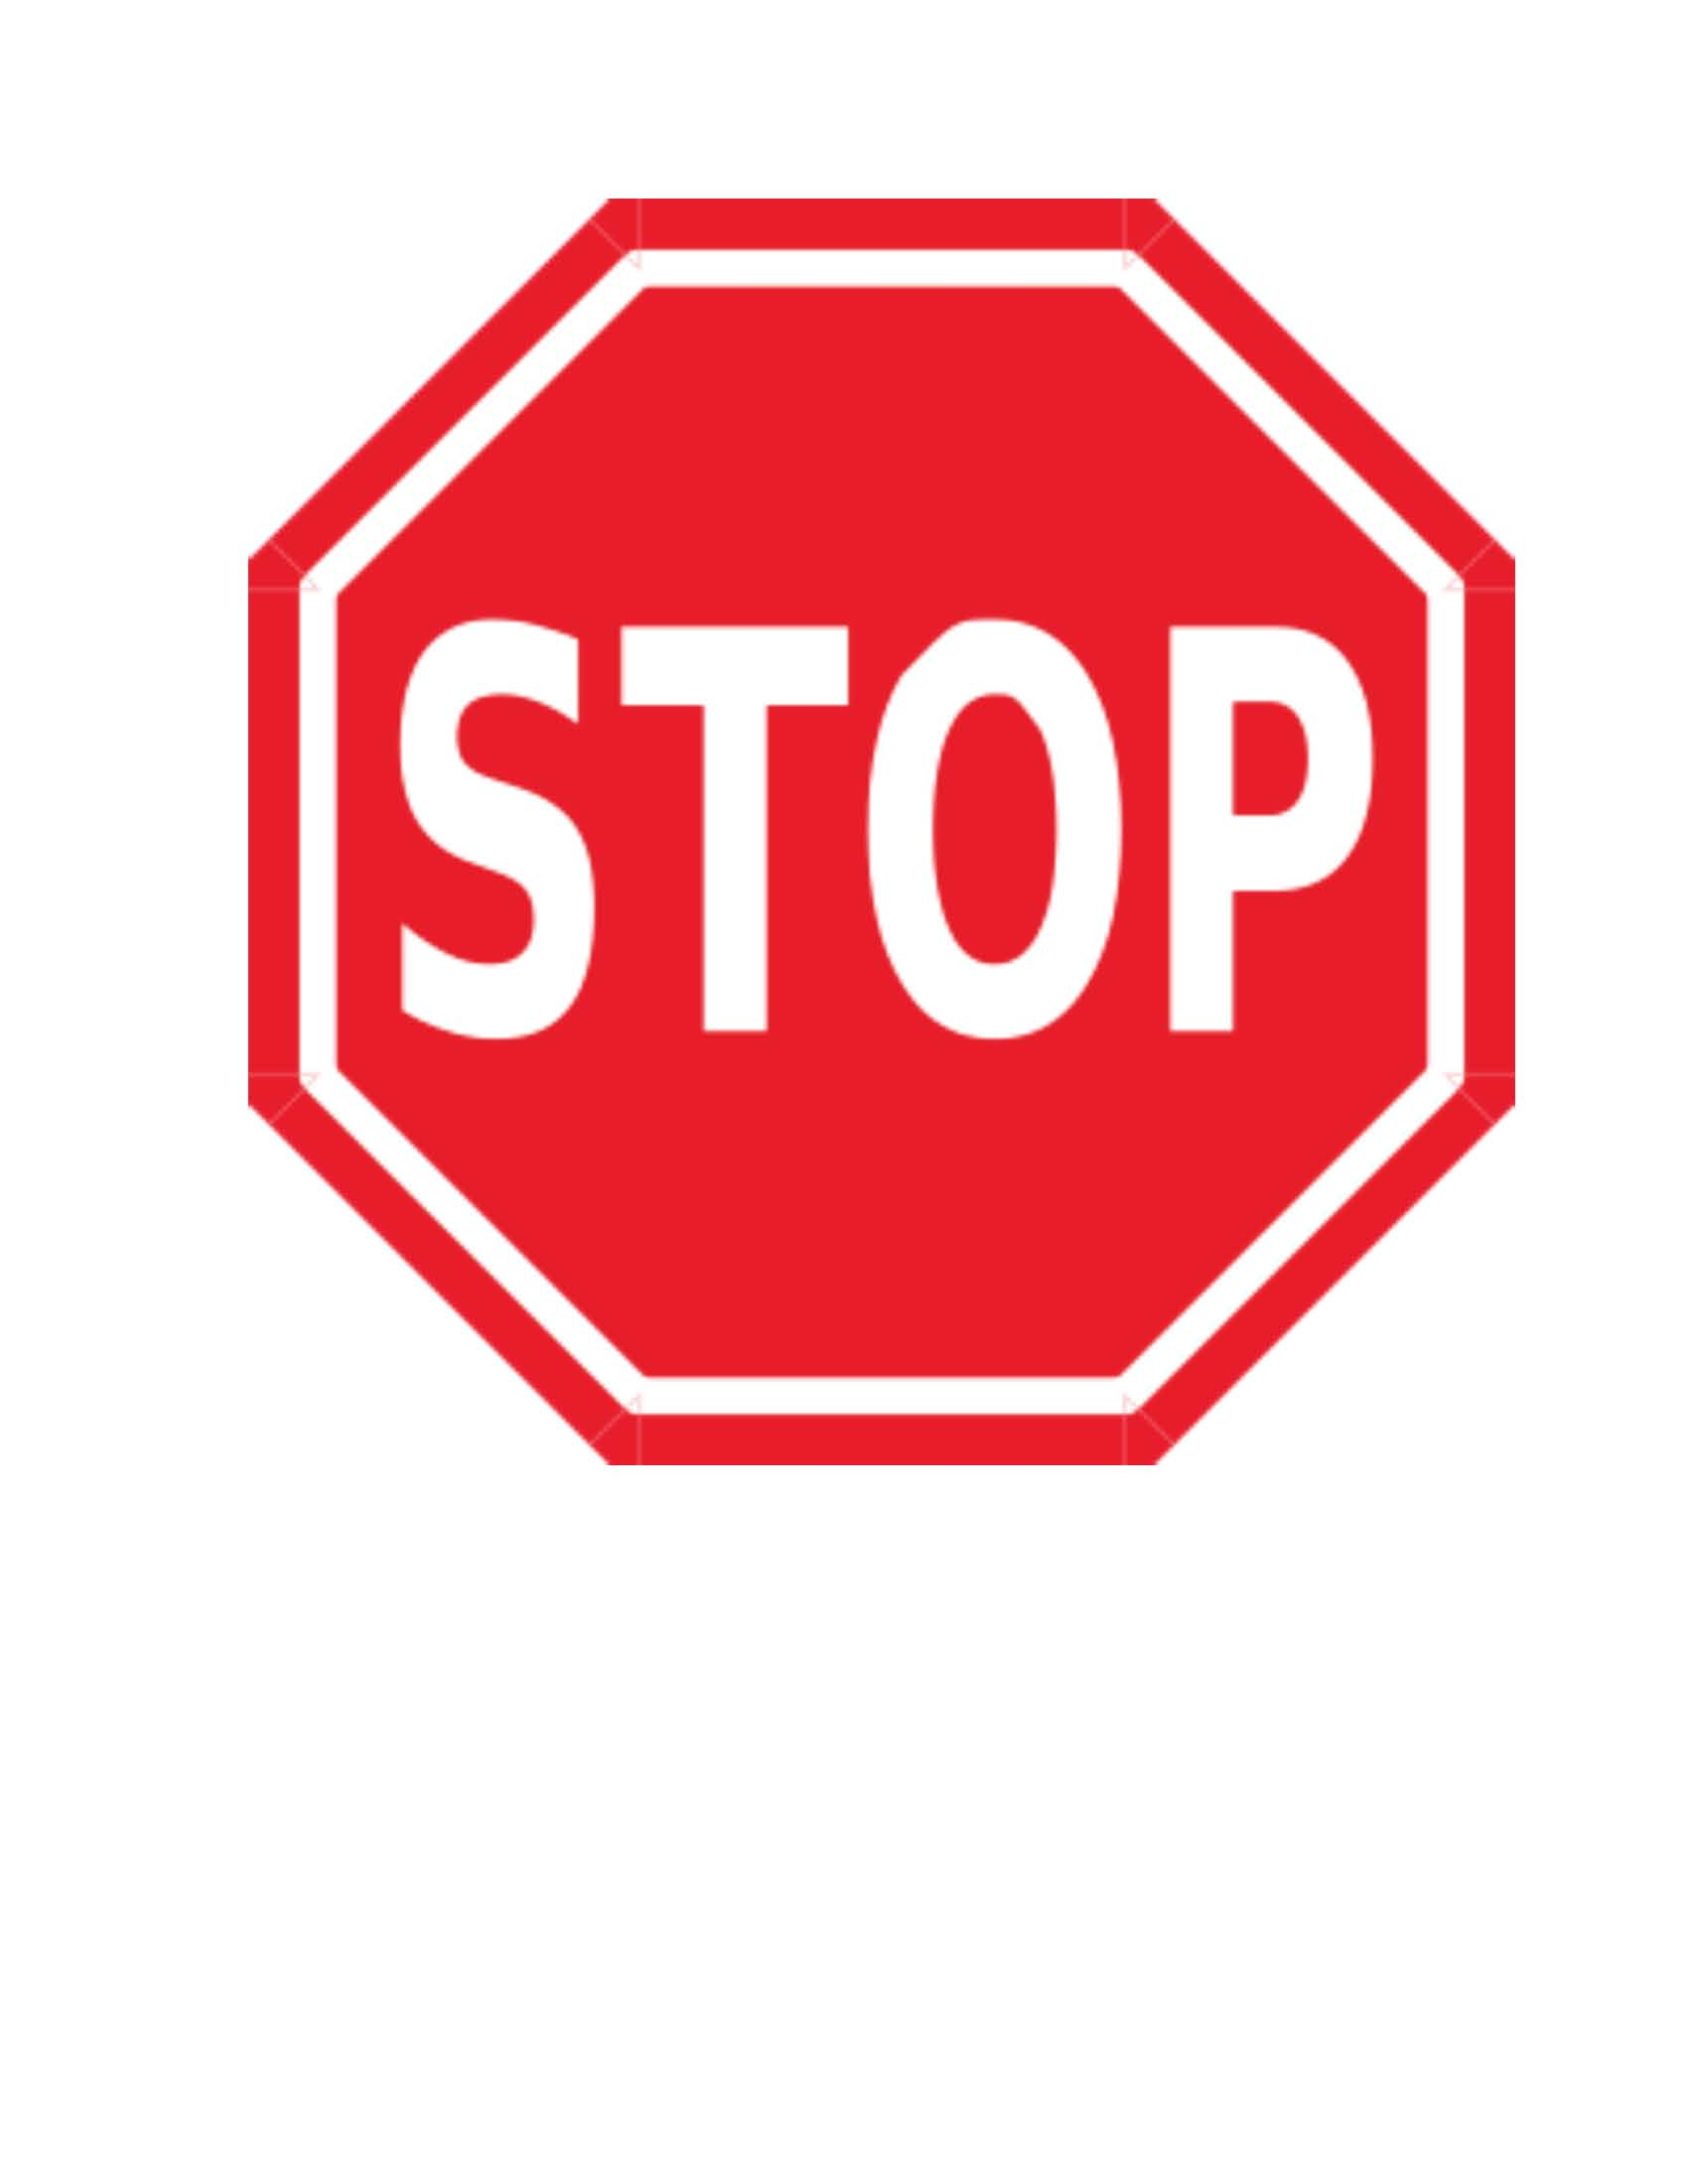 stop sign, behavior management ideas, behavior management tips, classroom management tips, classroom management ideas, assessment tips, assessment ideas, how to assess without being interrupted, how to assess a large number of students, how to keep children from interrupting, behavior modification techniques, behavior modification ideas, behavior modification tips, behavior modification tricks, behavior modification lessons,